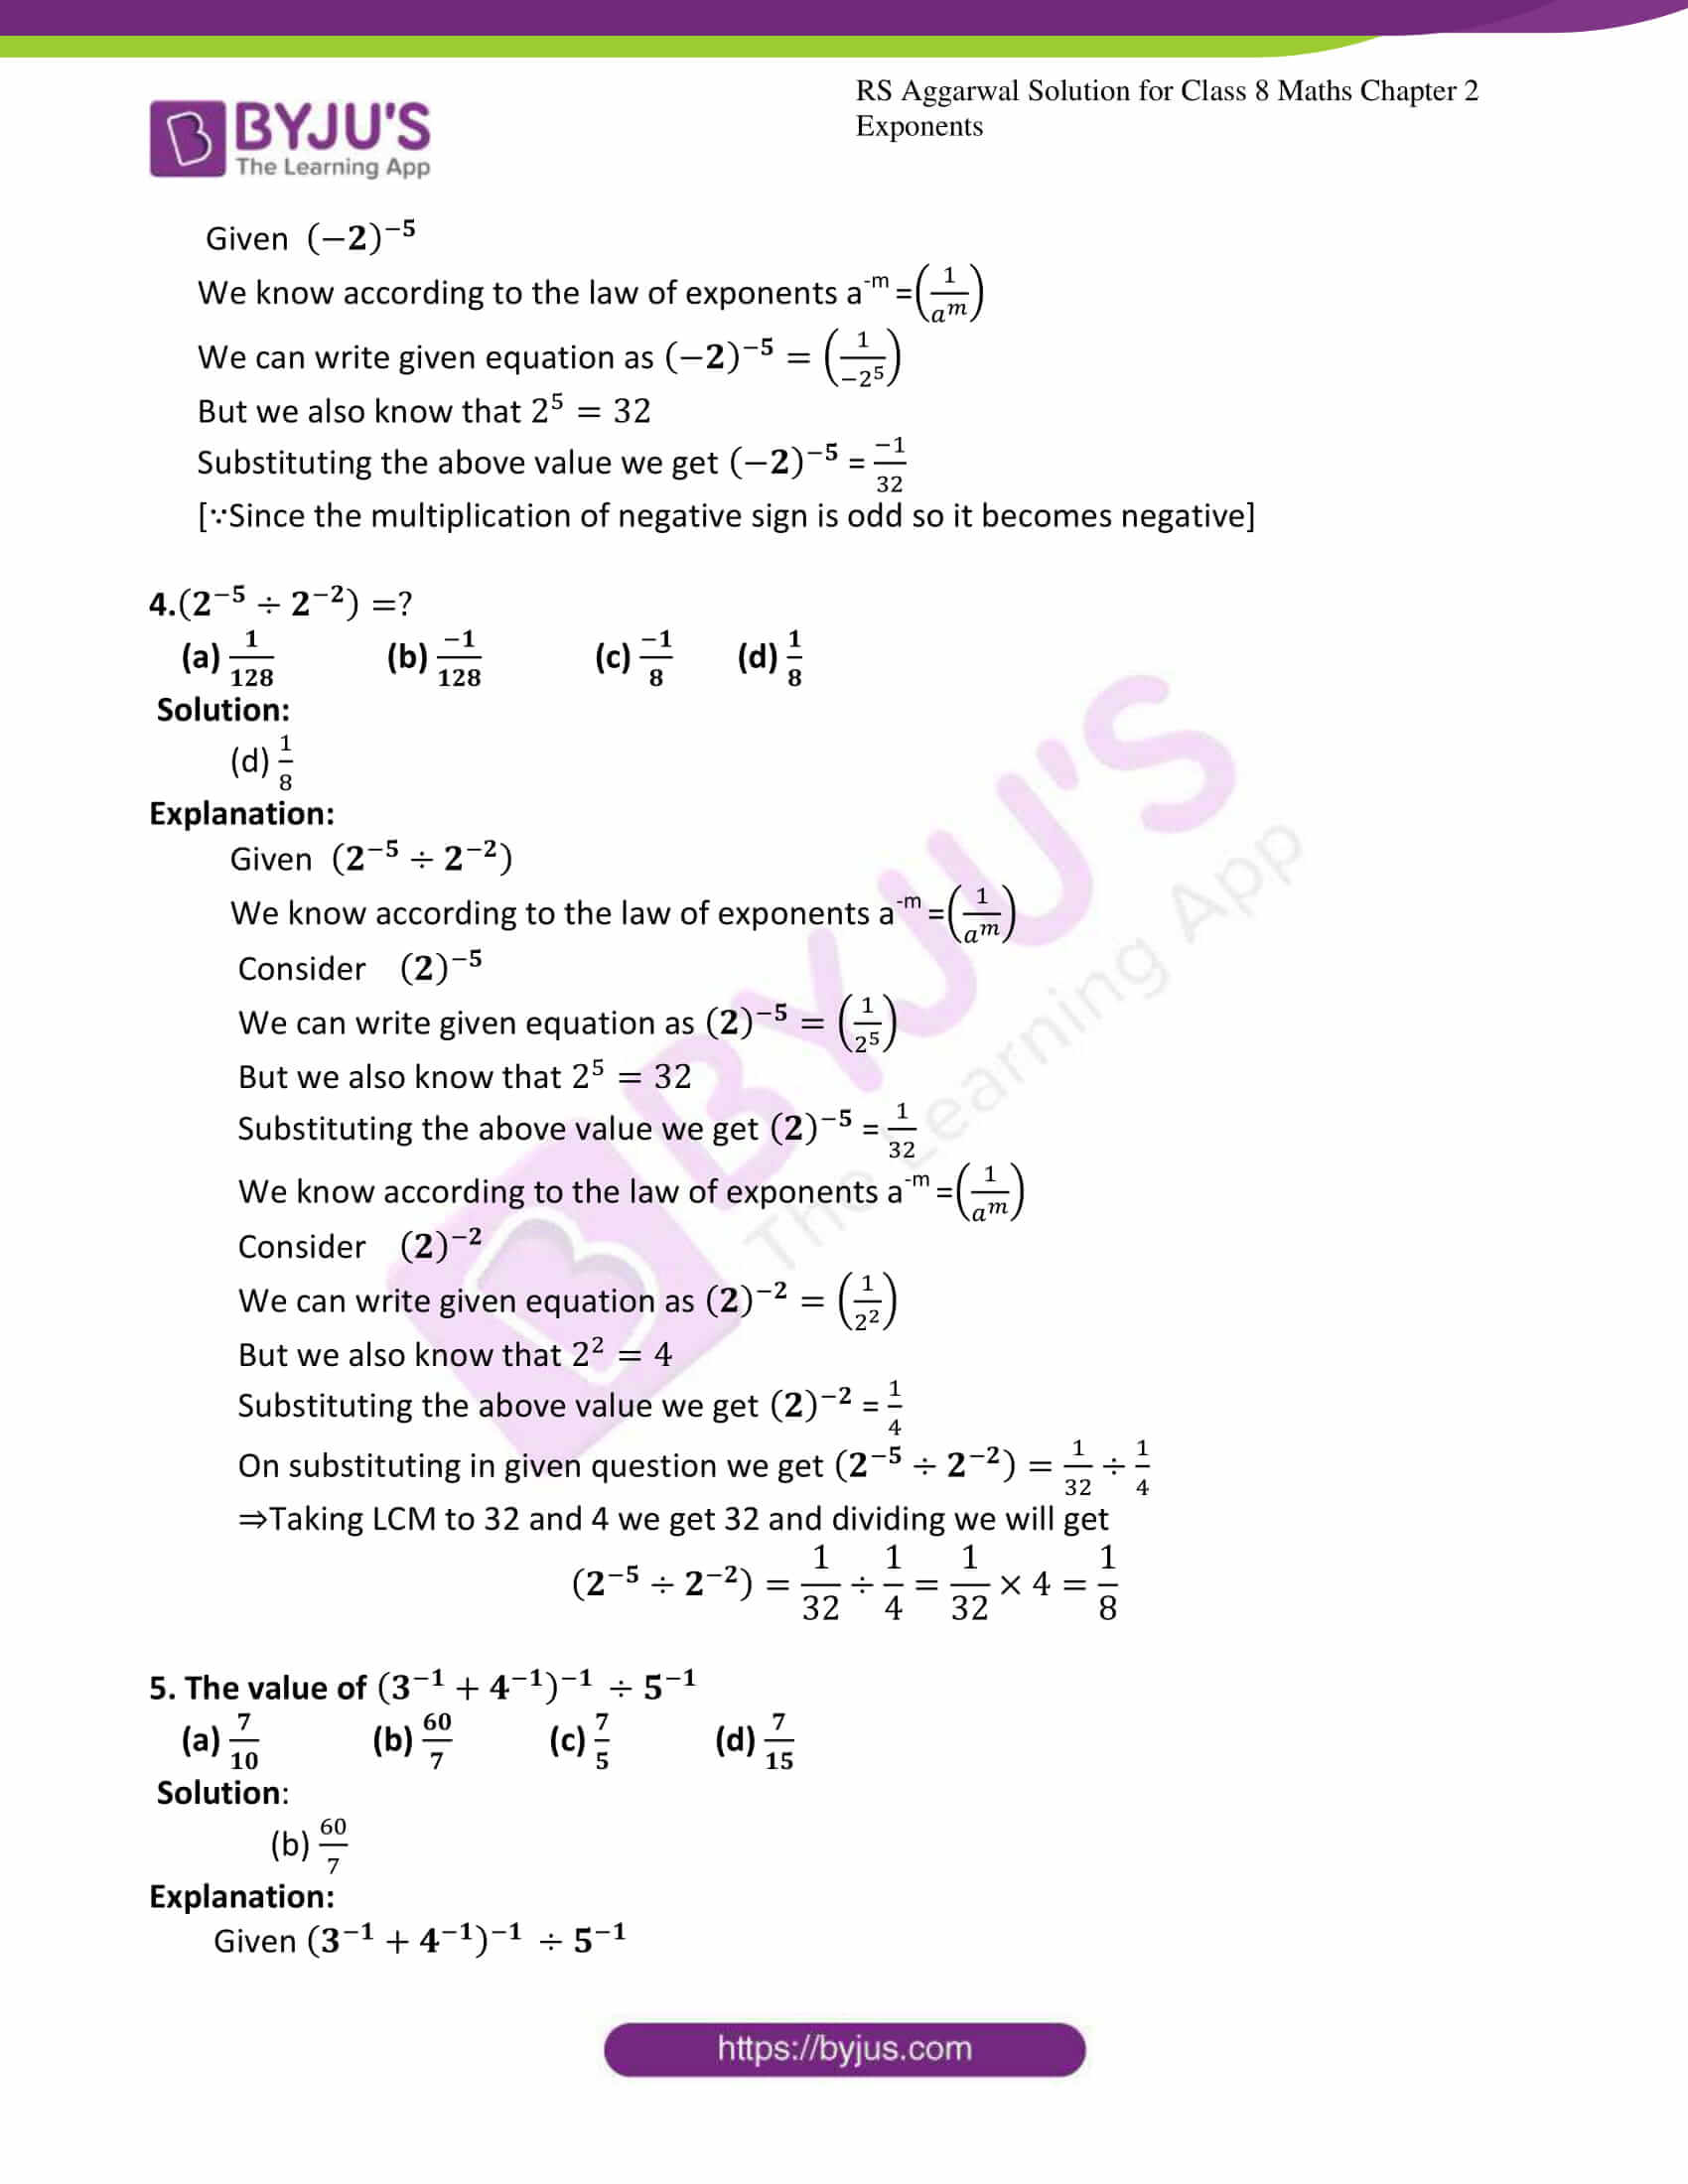 rs aggarwal solution for class 8 maths chapter 2 ex c 2